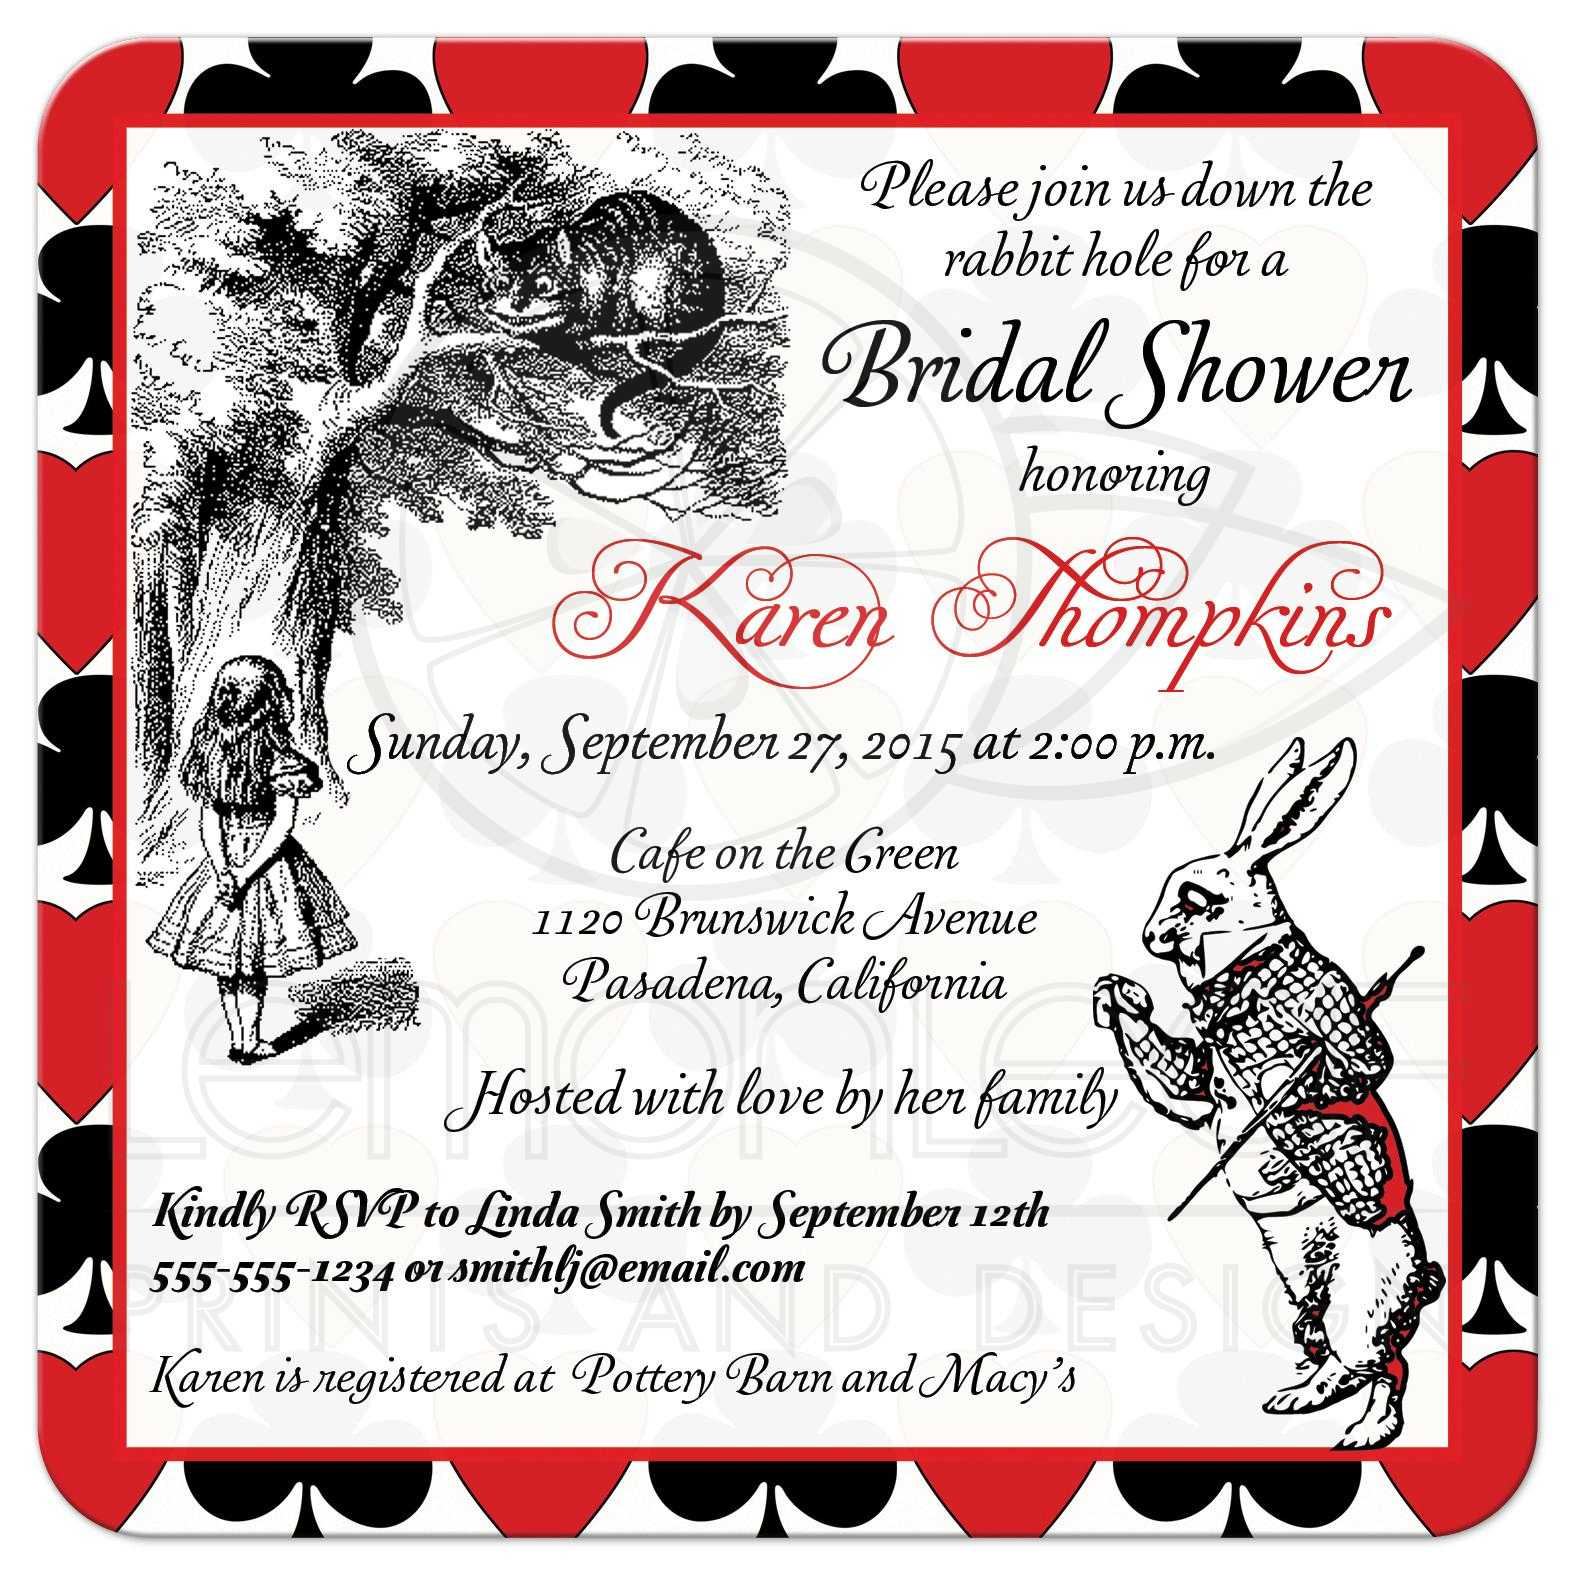 Bridal shower invite mad hatter alice in wonderland tea party alice in wonderland tea party wedding shower invitation mad hatter filmwisefo